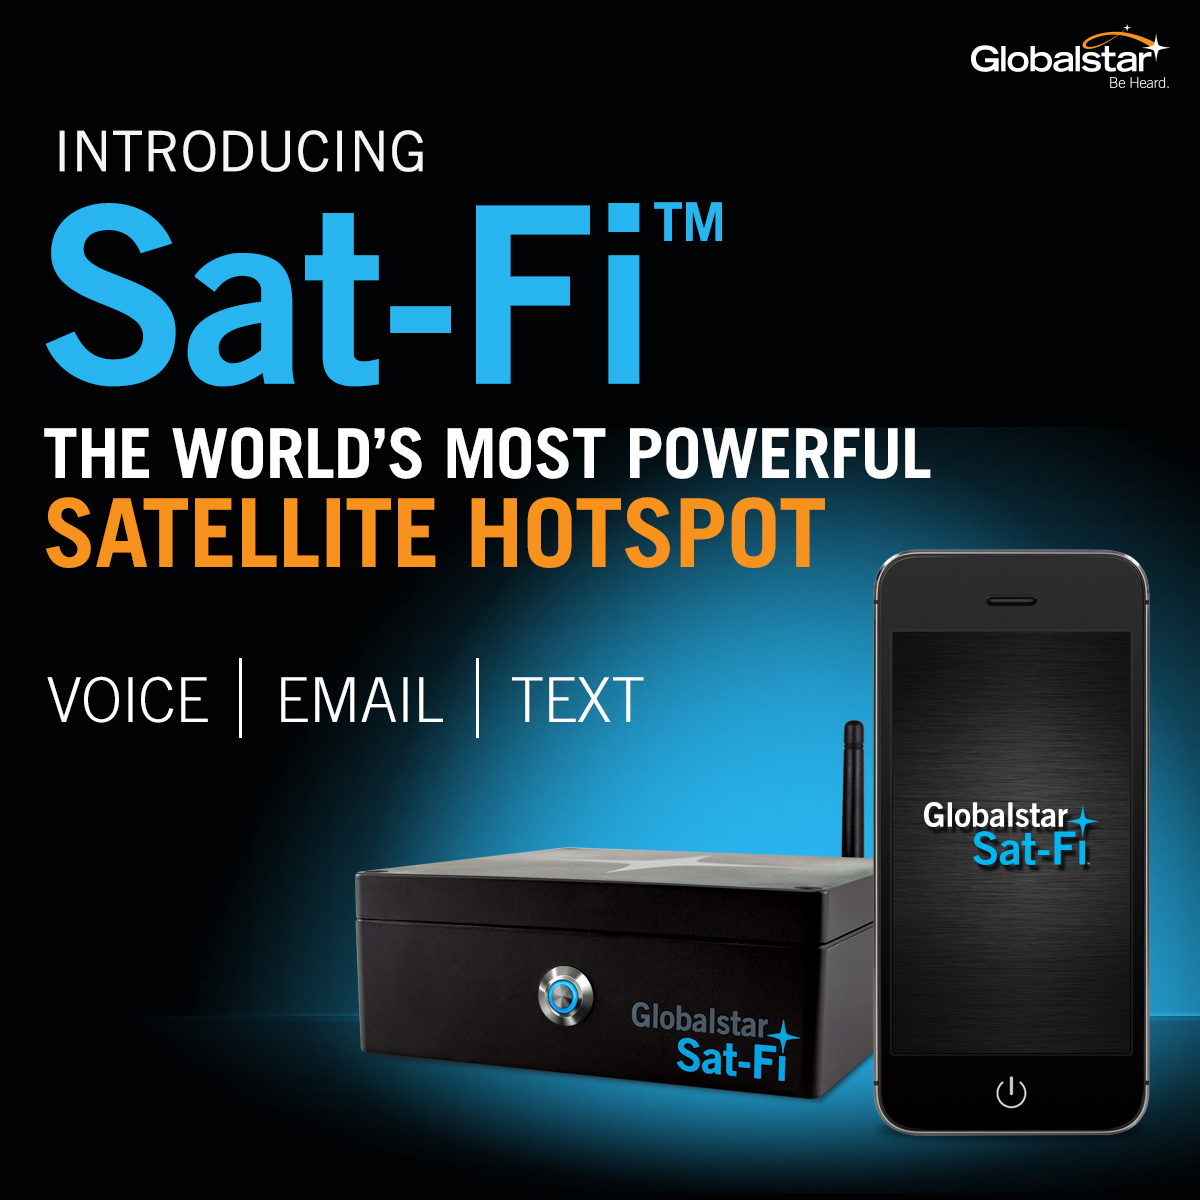 Wifi Network For Modern Devices: Globalstar's Sat-Fi , The World's Most Powerful Satellite